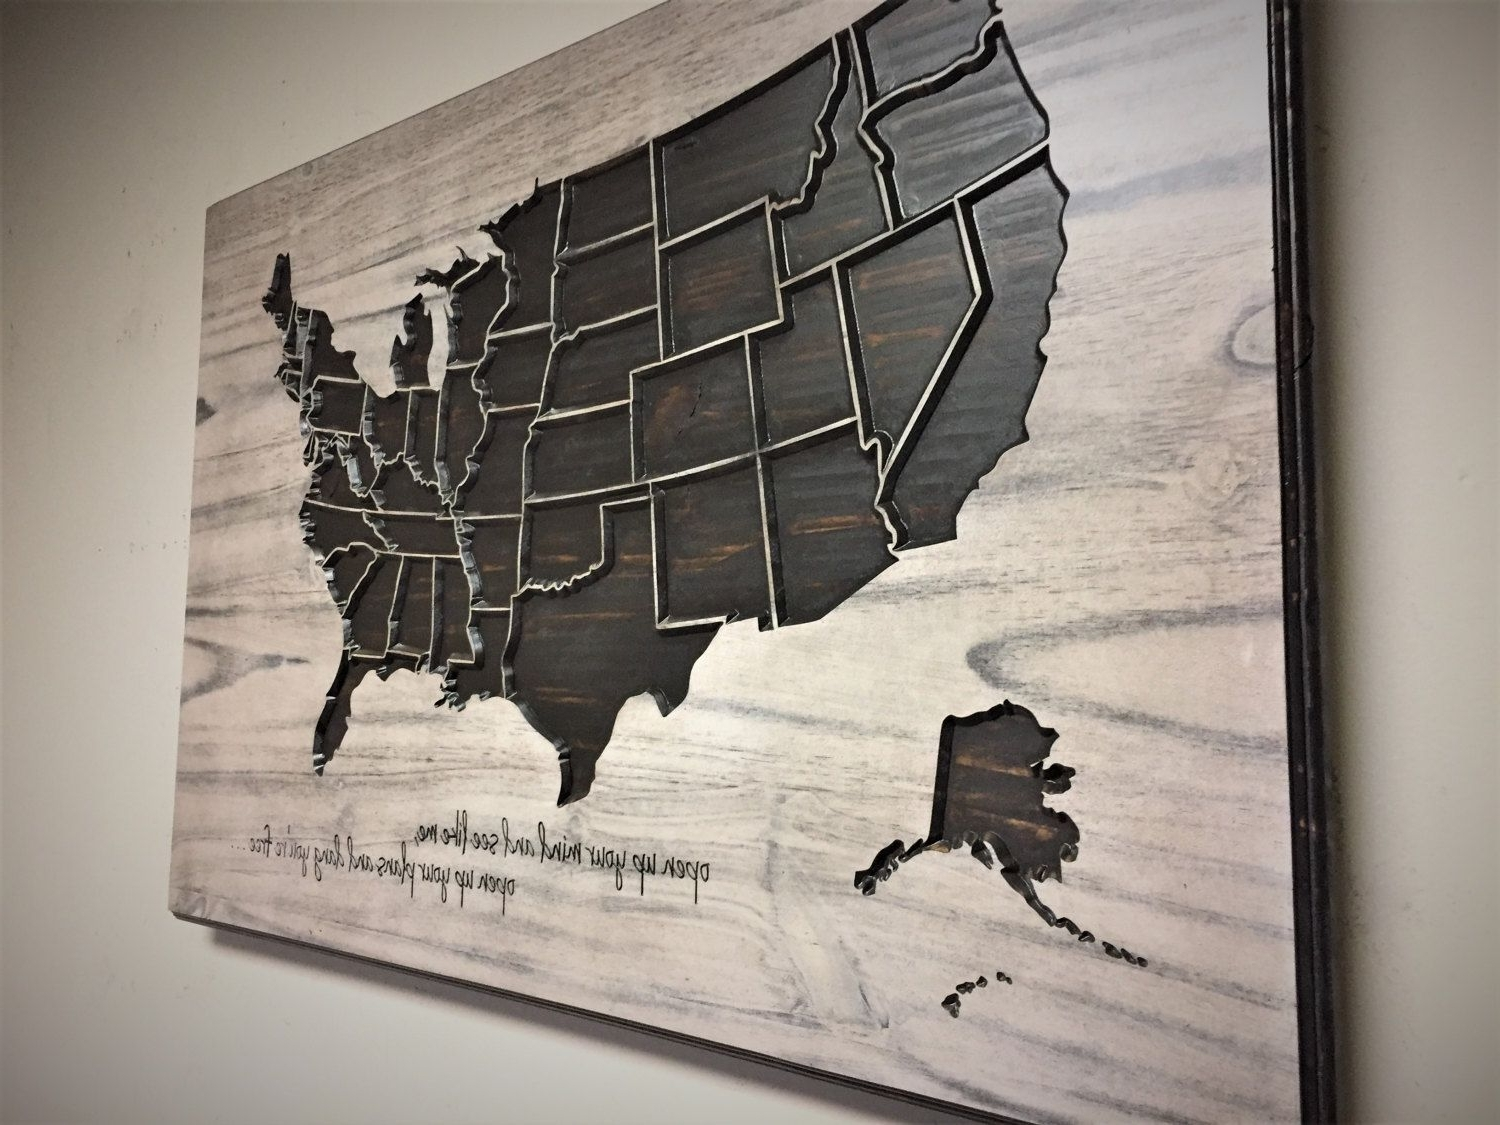 United States Map Wall Decor.Showing Photos Of United States Map Wall Art View 9 Of 15 Photos